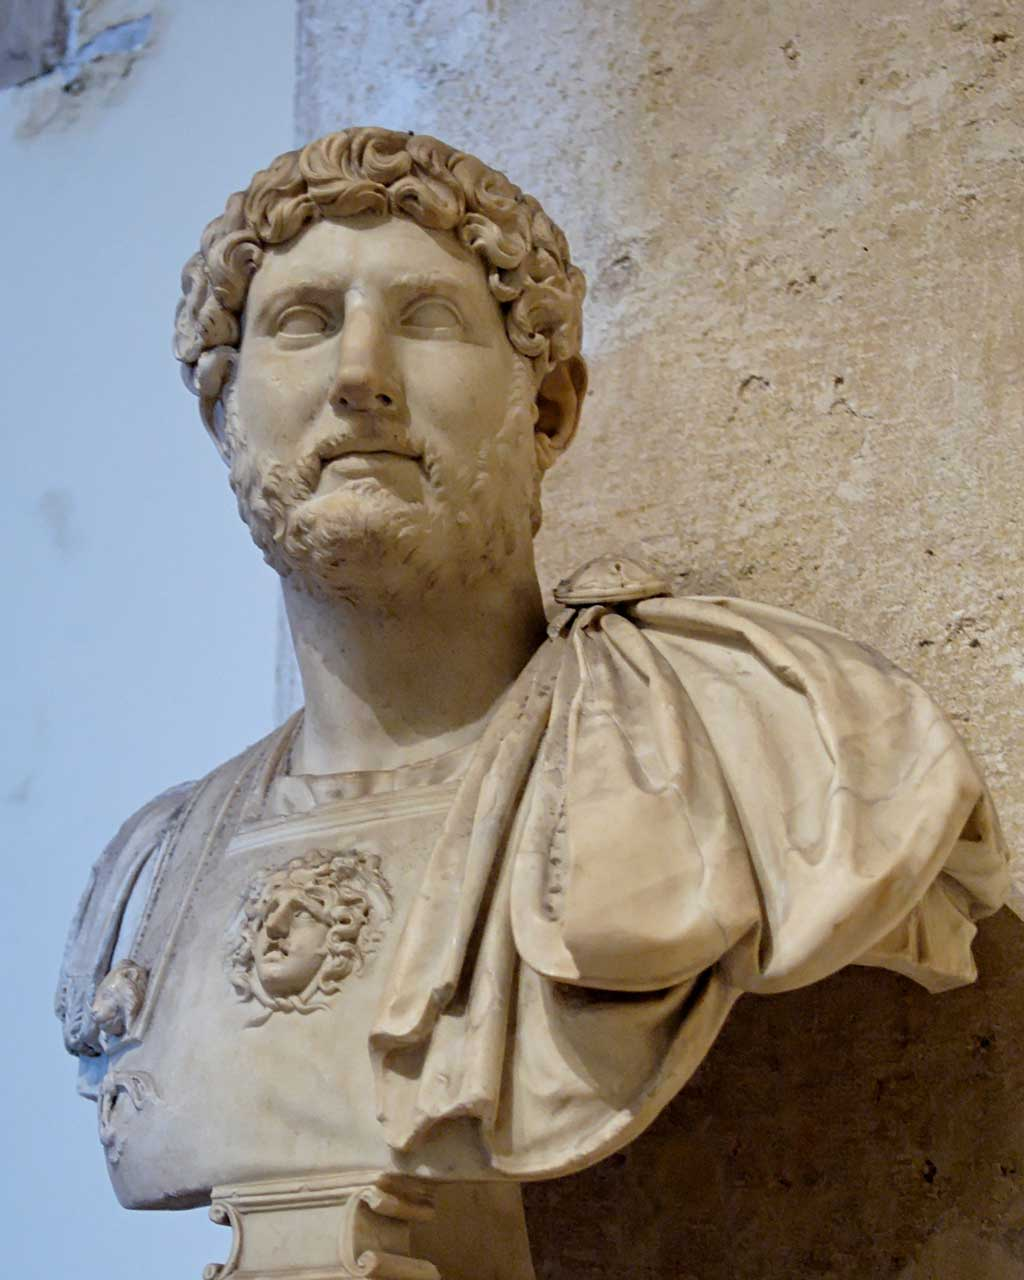 This photo shows a bust of Hadrian. Hadrian set a fashion for beards among Romans, and most emperors after him also wore a beard.